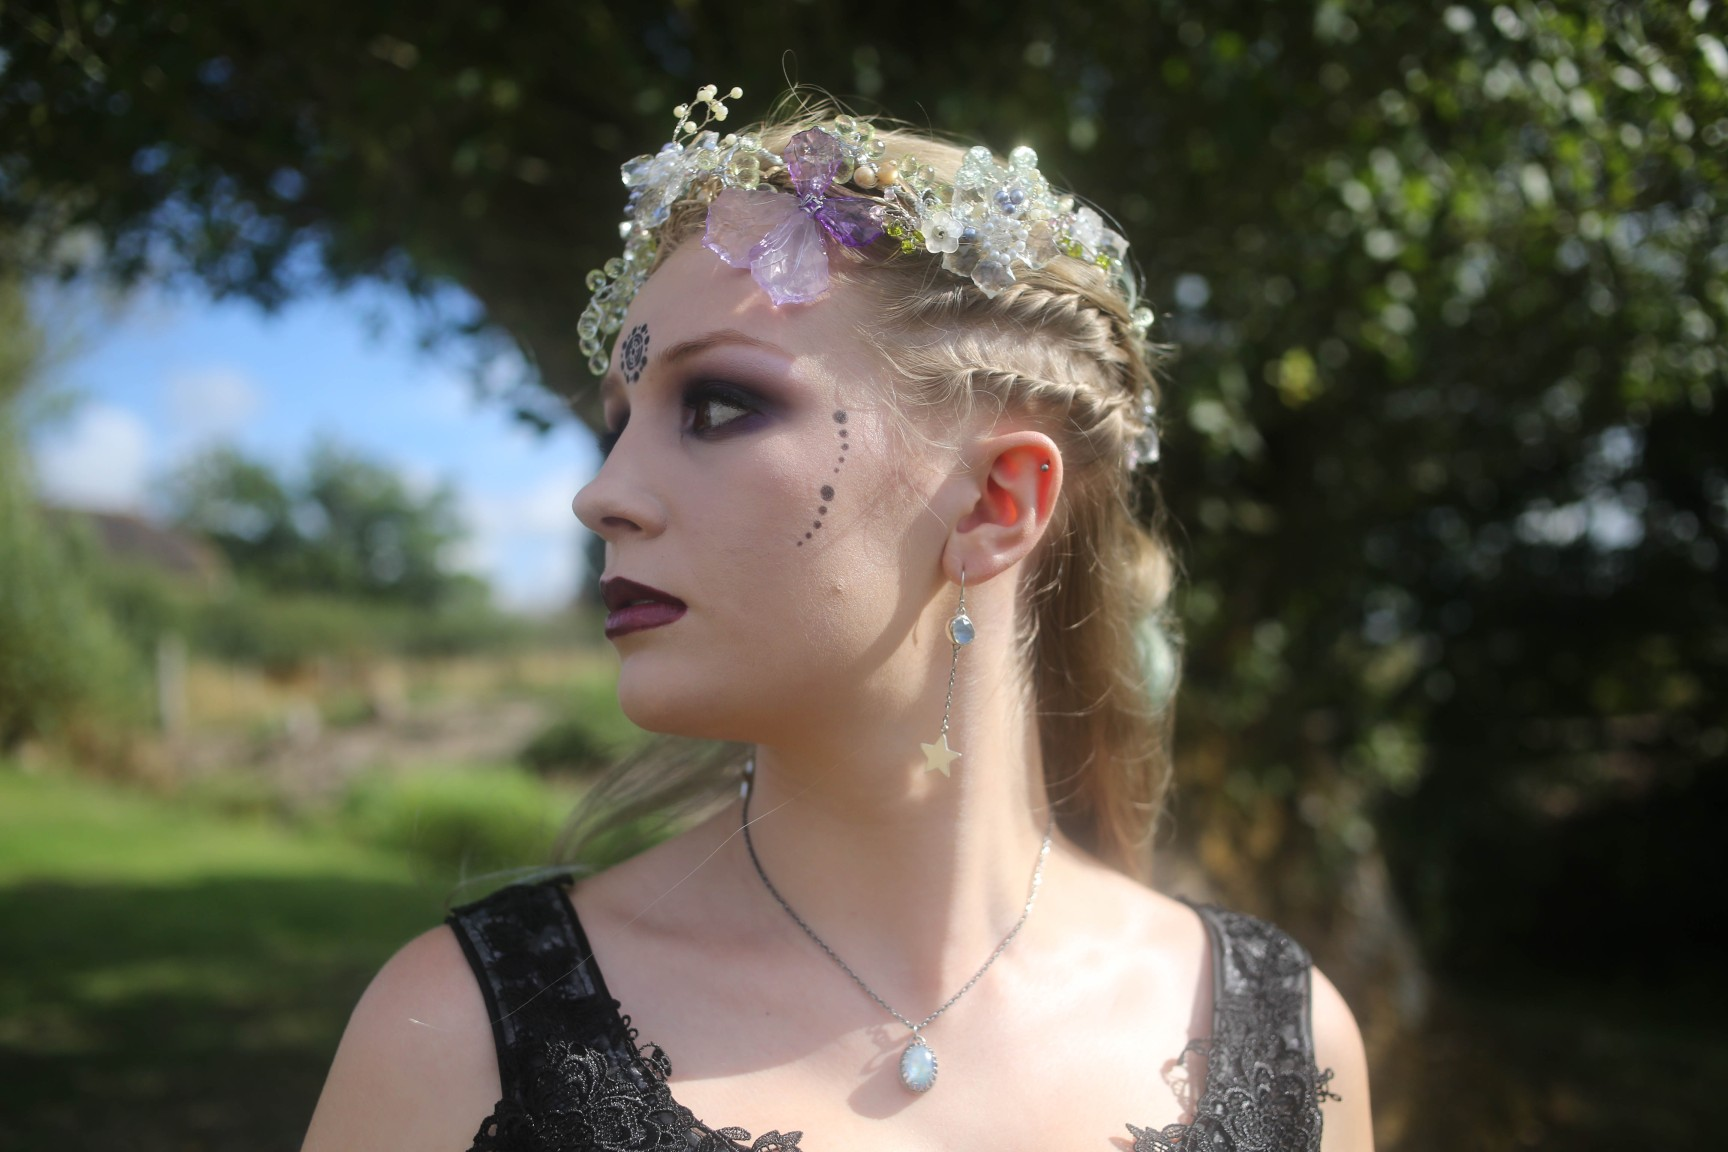 nature wedding - pagan wedding - ethereal wedding - spiritual wedding - alternative wedding - mystical wedding - quirky wedding - unique bridal makeup - spiritual wedding makeup